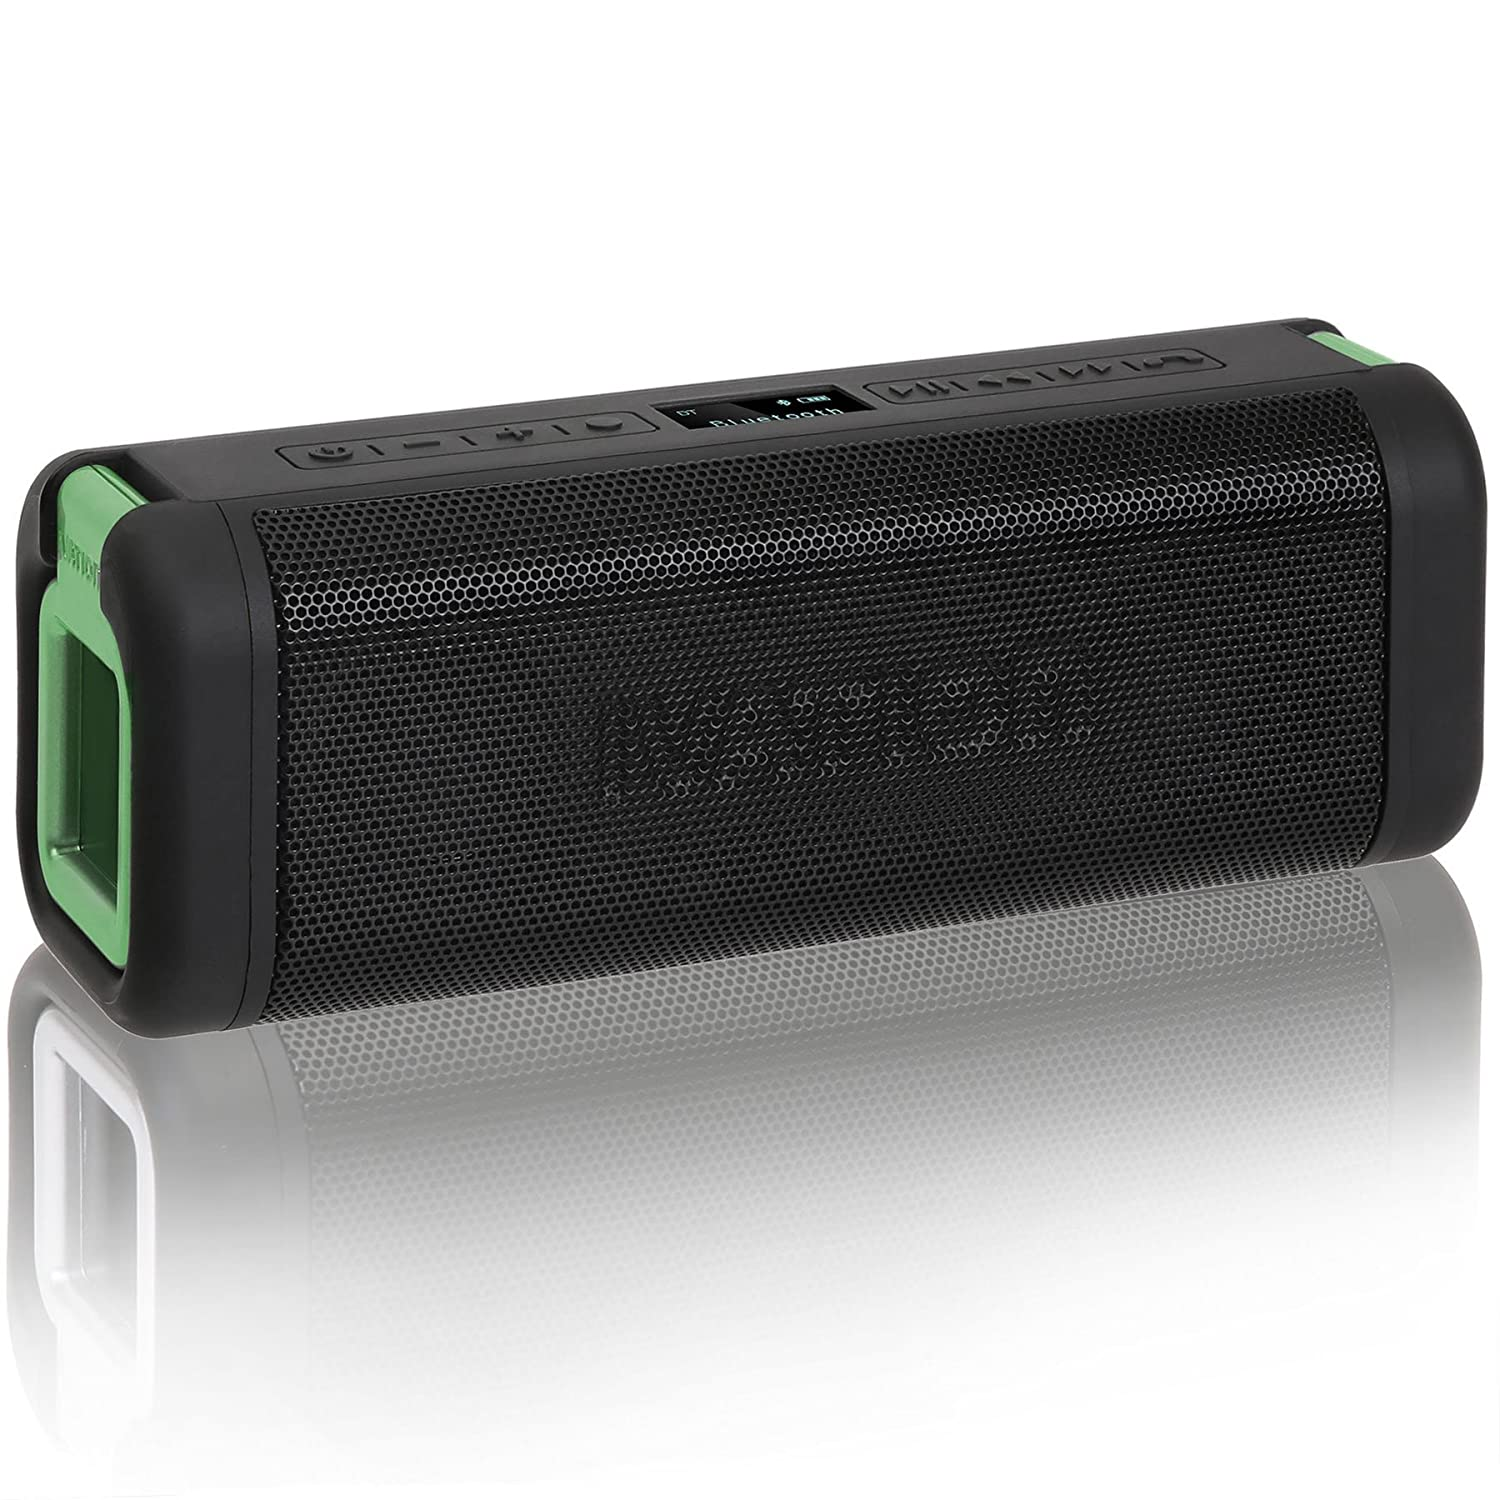 speakers under 100. ivation portable best bluetooth speakers under 100 r